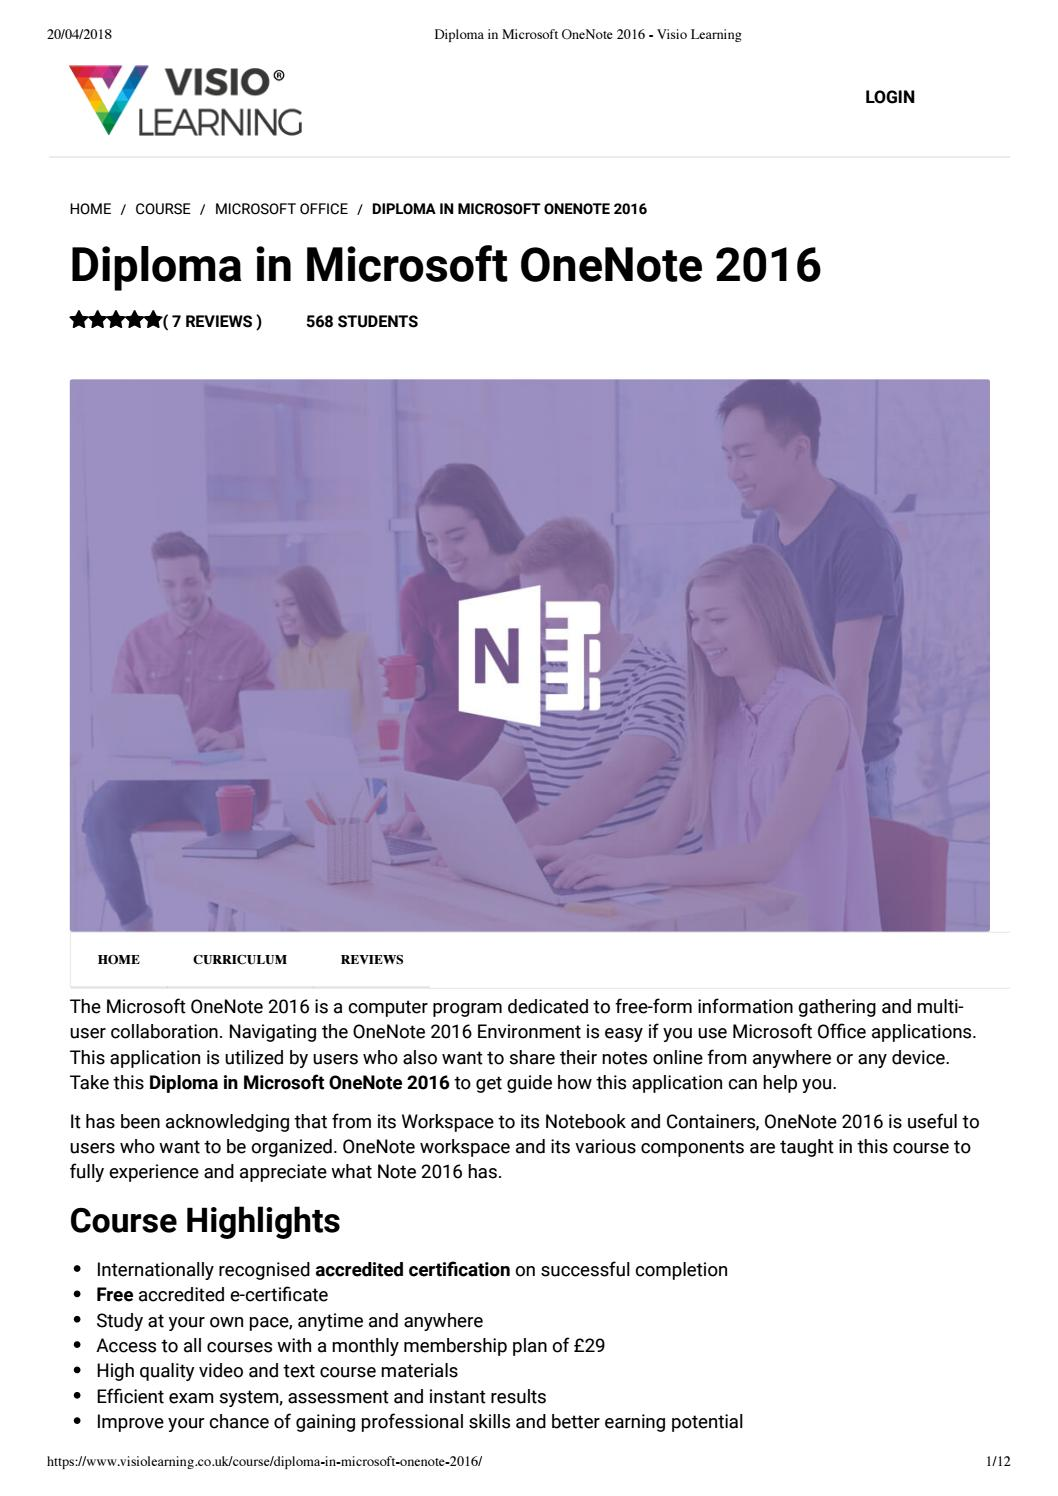 Diploma in microsoft onenote 2016 -Visio Learning by